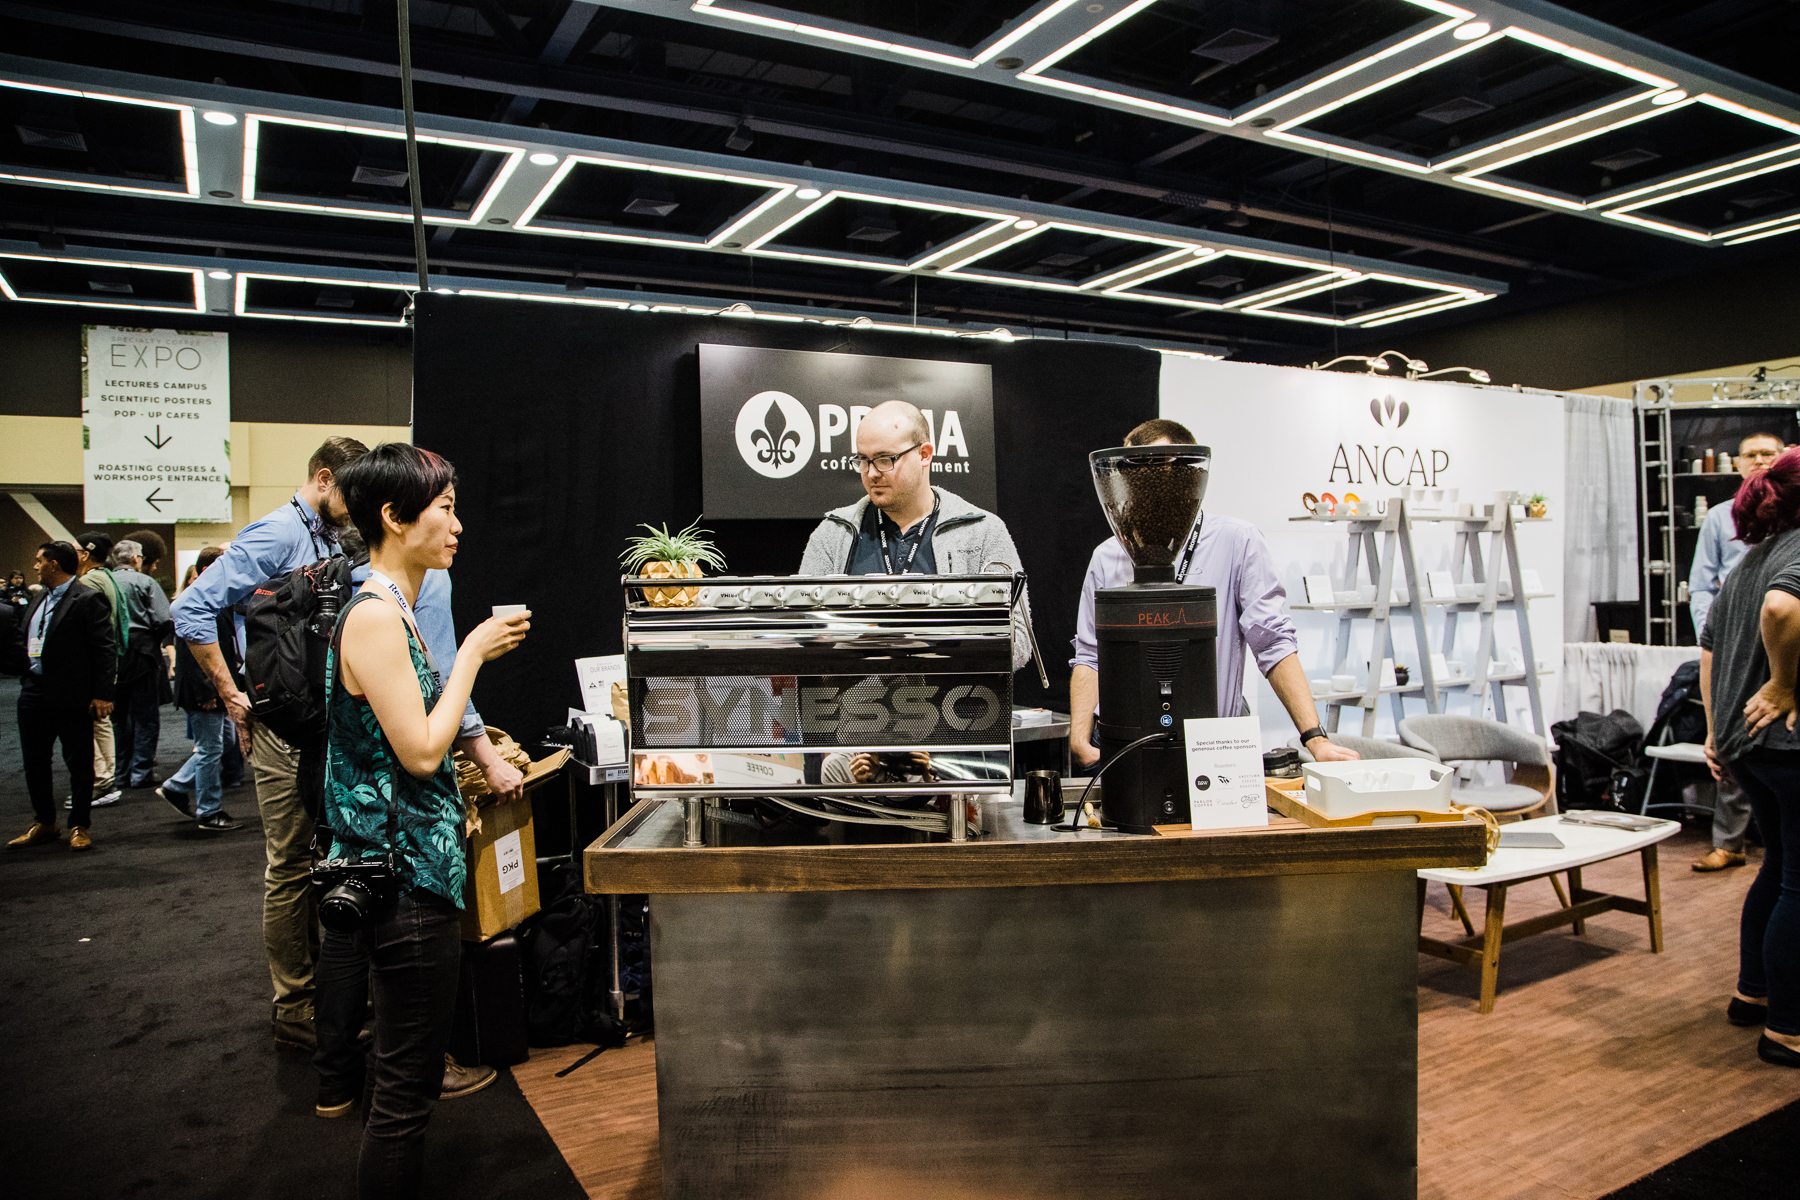 A Synesso M V P Hydra, a Mahlkonig Peak,and a Puqpress on a coffee brew cart with people drinking coffee in the Prima Coffee booth at the 2018 Coffee Expo.